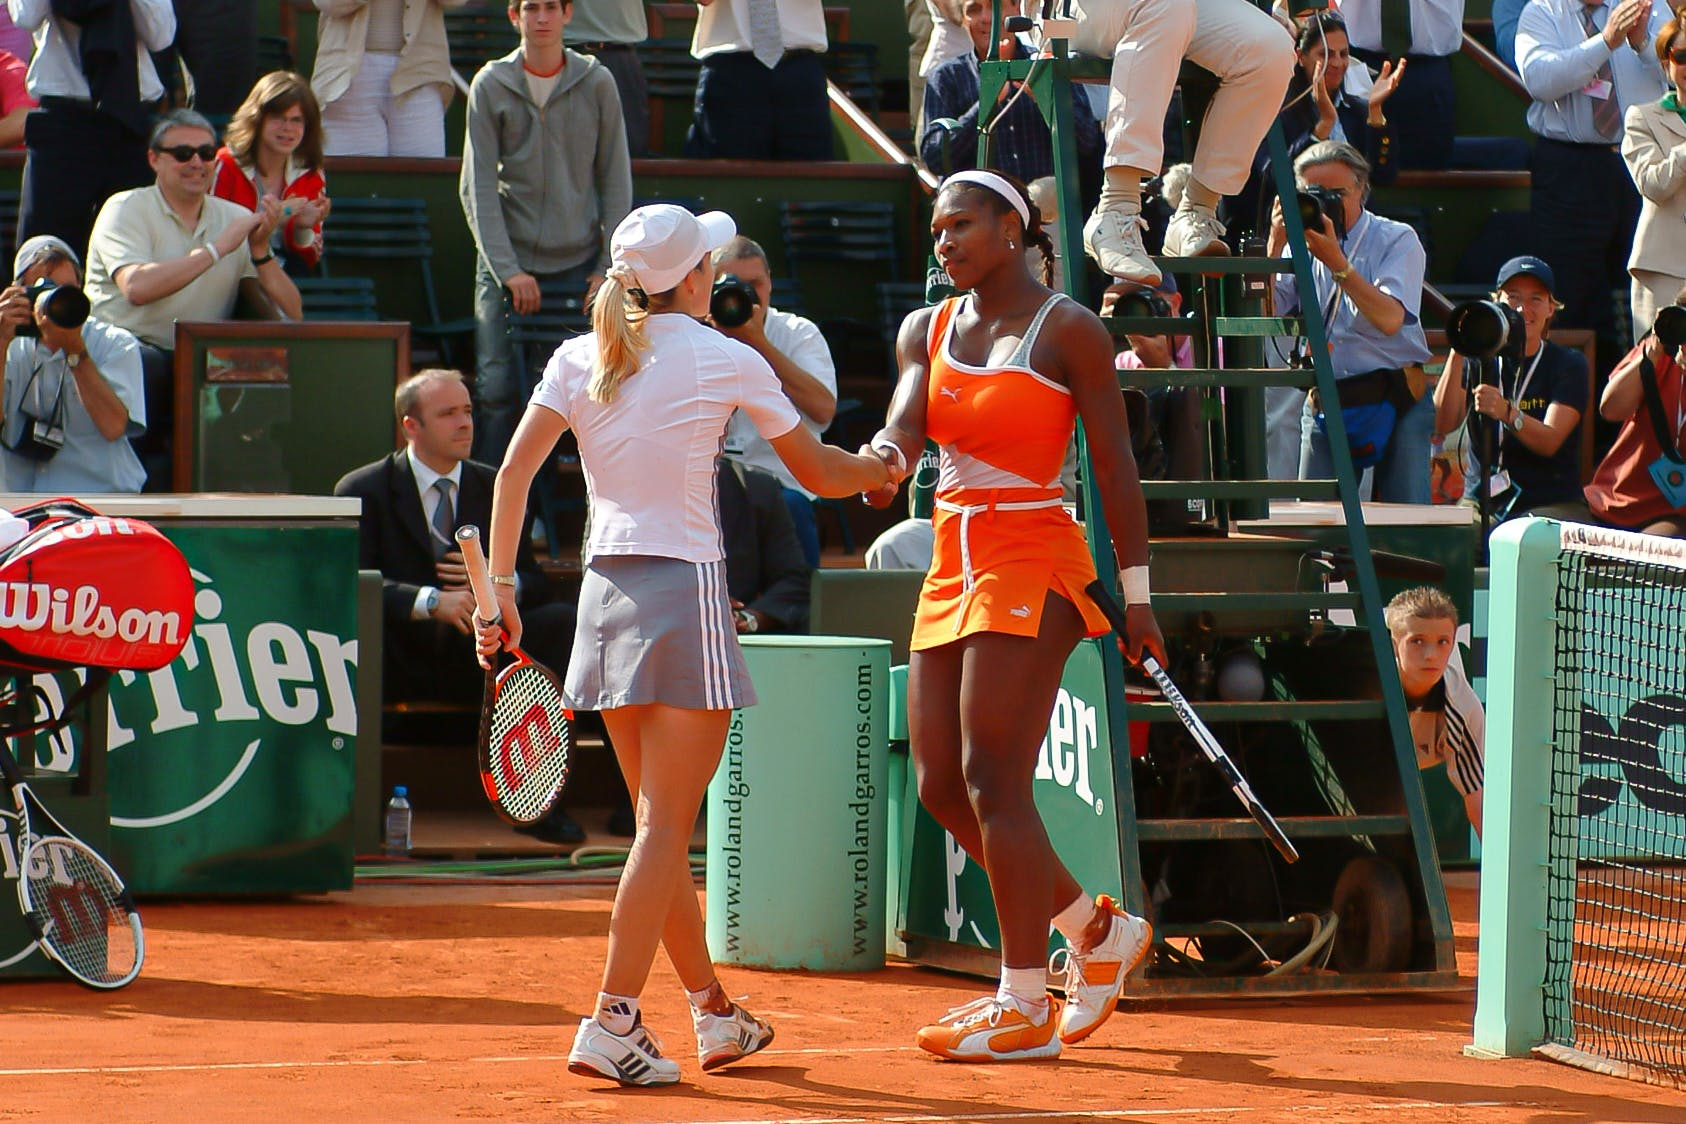 Justine Henin against Serena Williams at Roland-Garros 2003